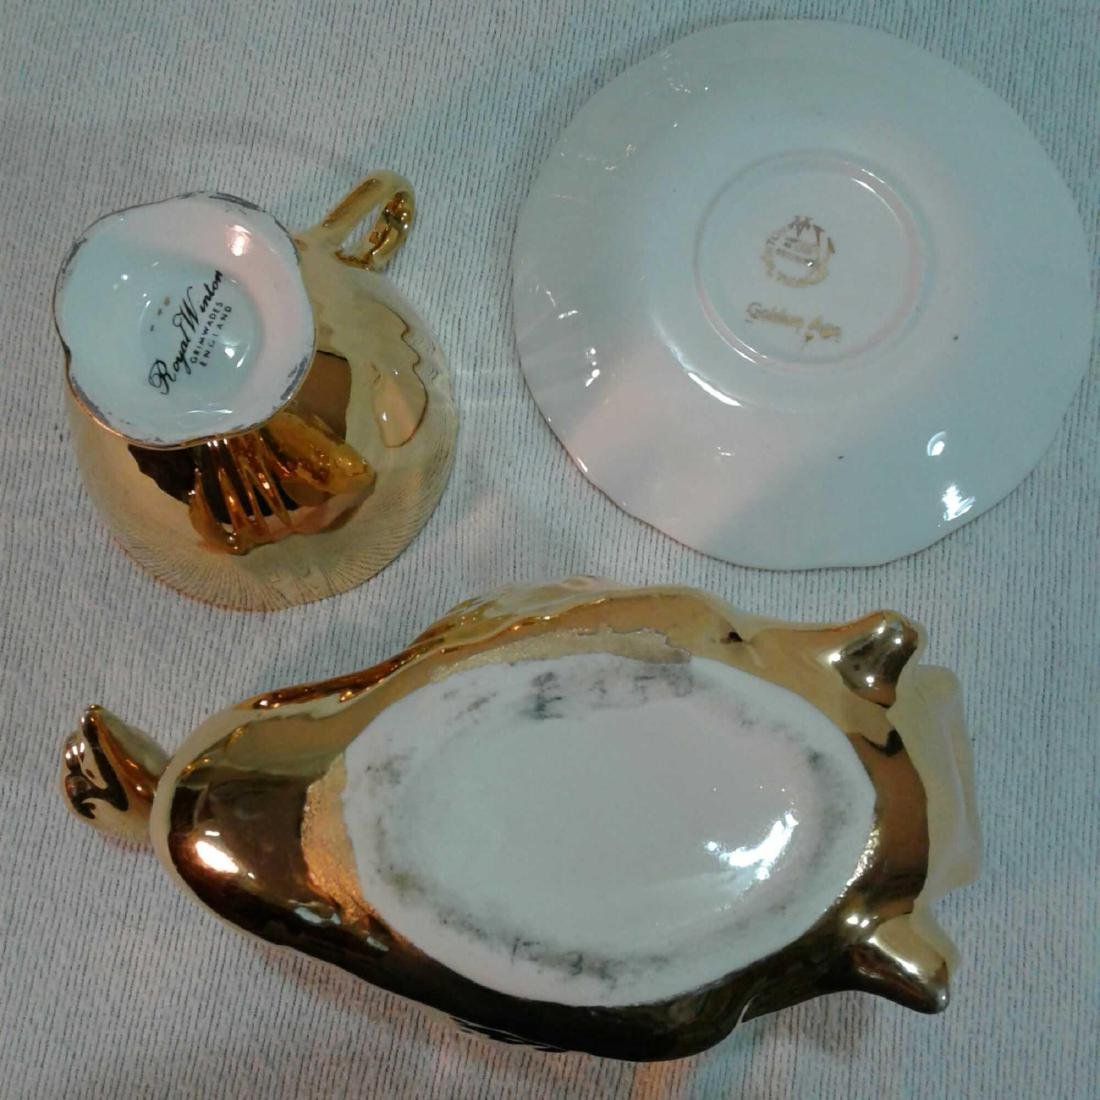 Royal Winton Golden Age 6 Piece Tea Set with 2 Swans - 8